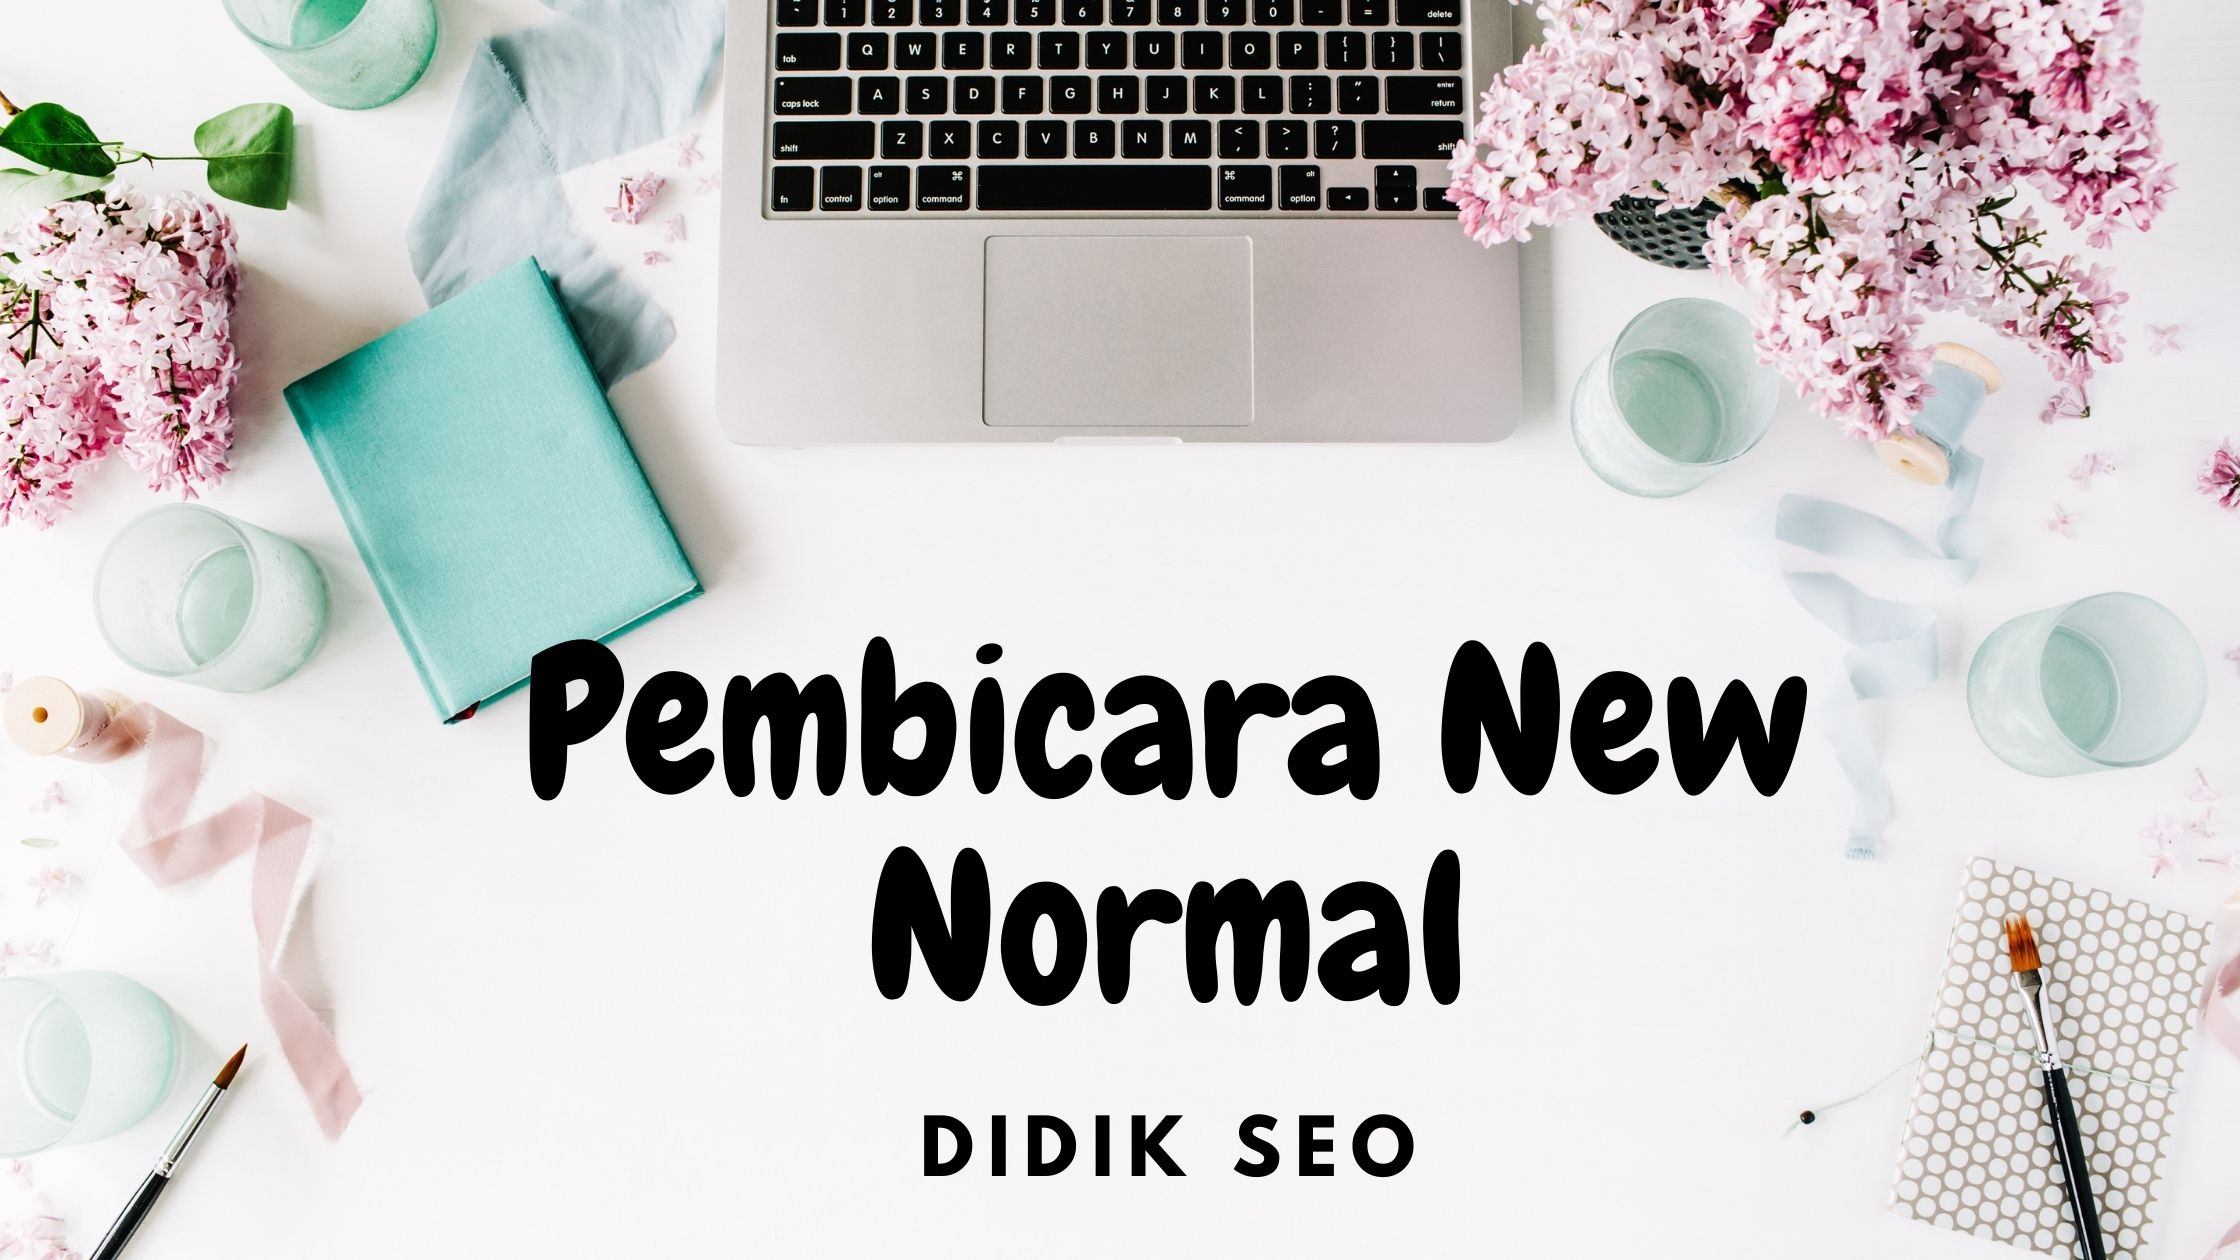 Pembicara New Normal